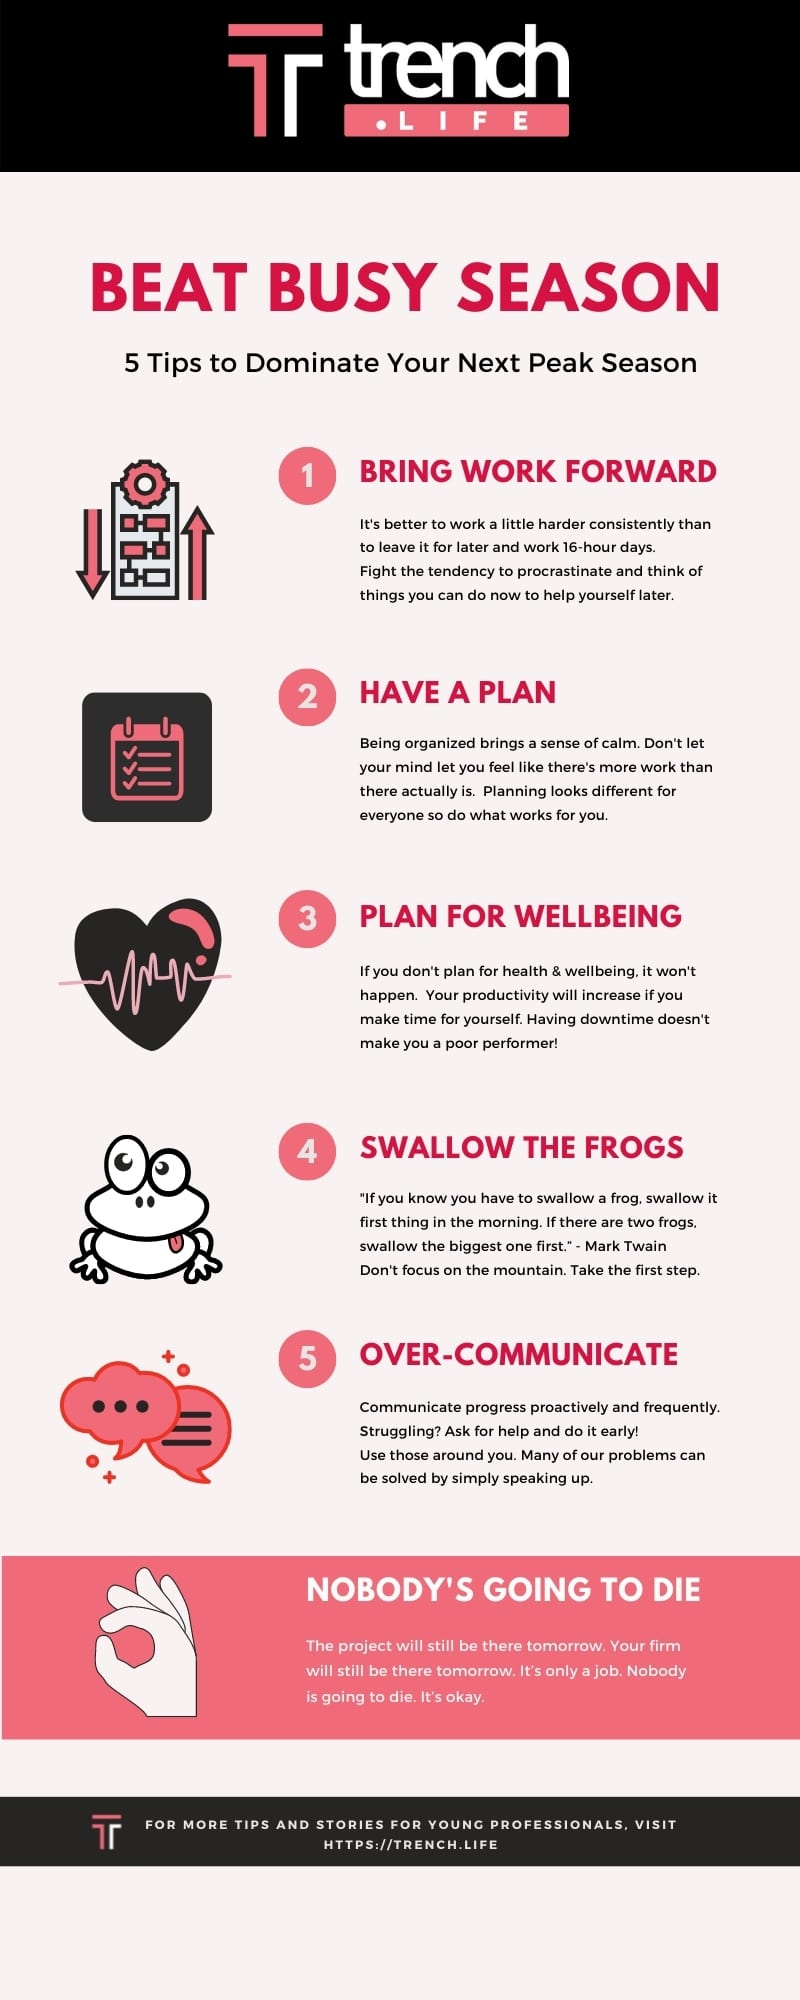 Beat Busy Season - tips for preparing for peak season. Infographic by Trench.Life